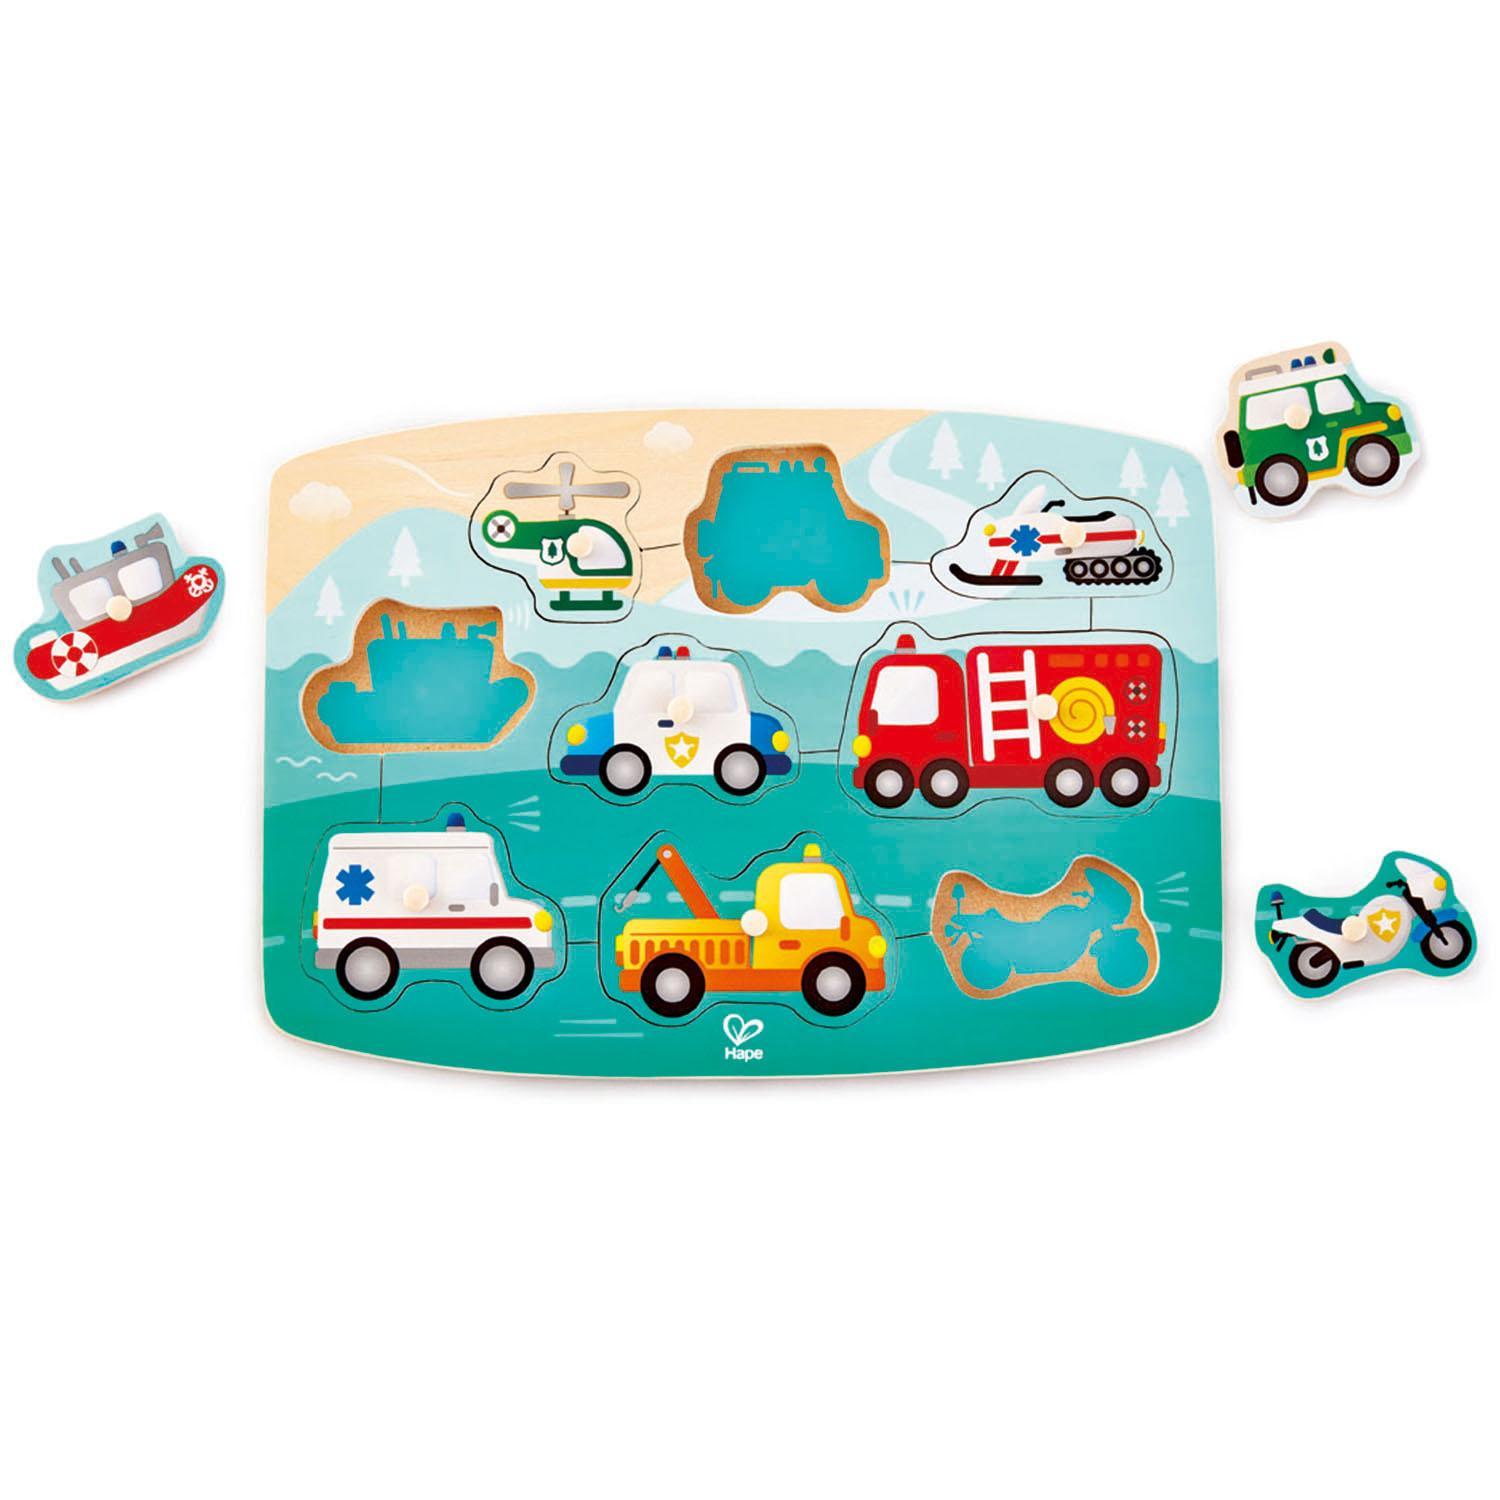 Emergency-services themed children's wooden puzzle with some of the vehicles at the side.